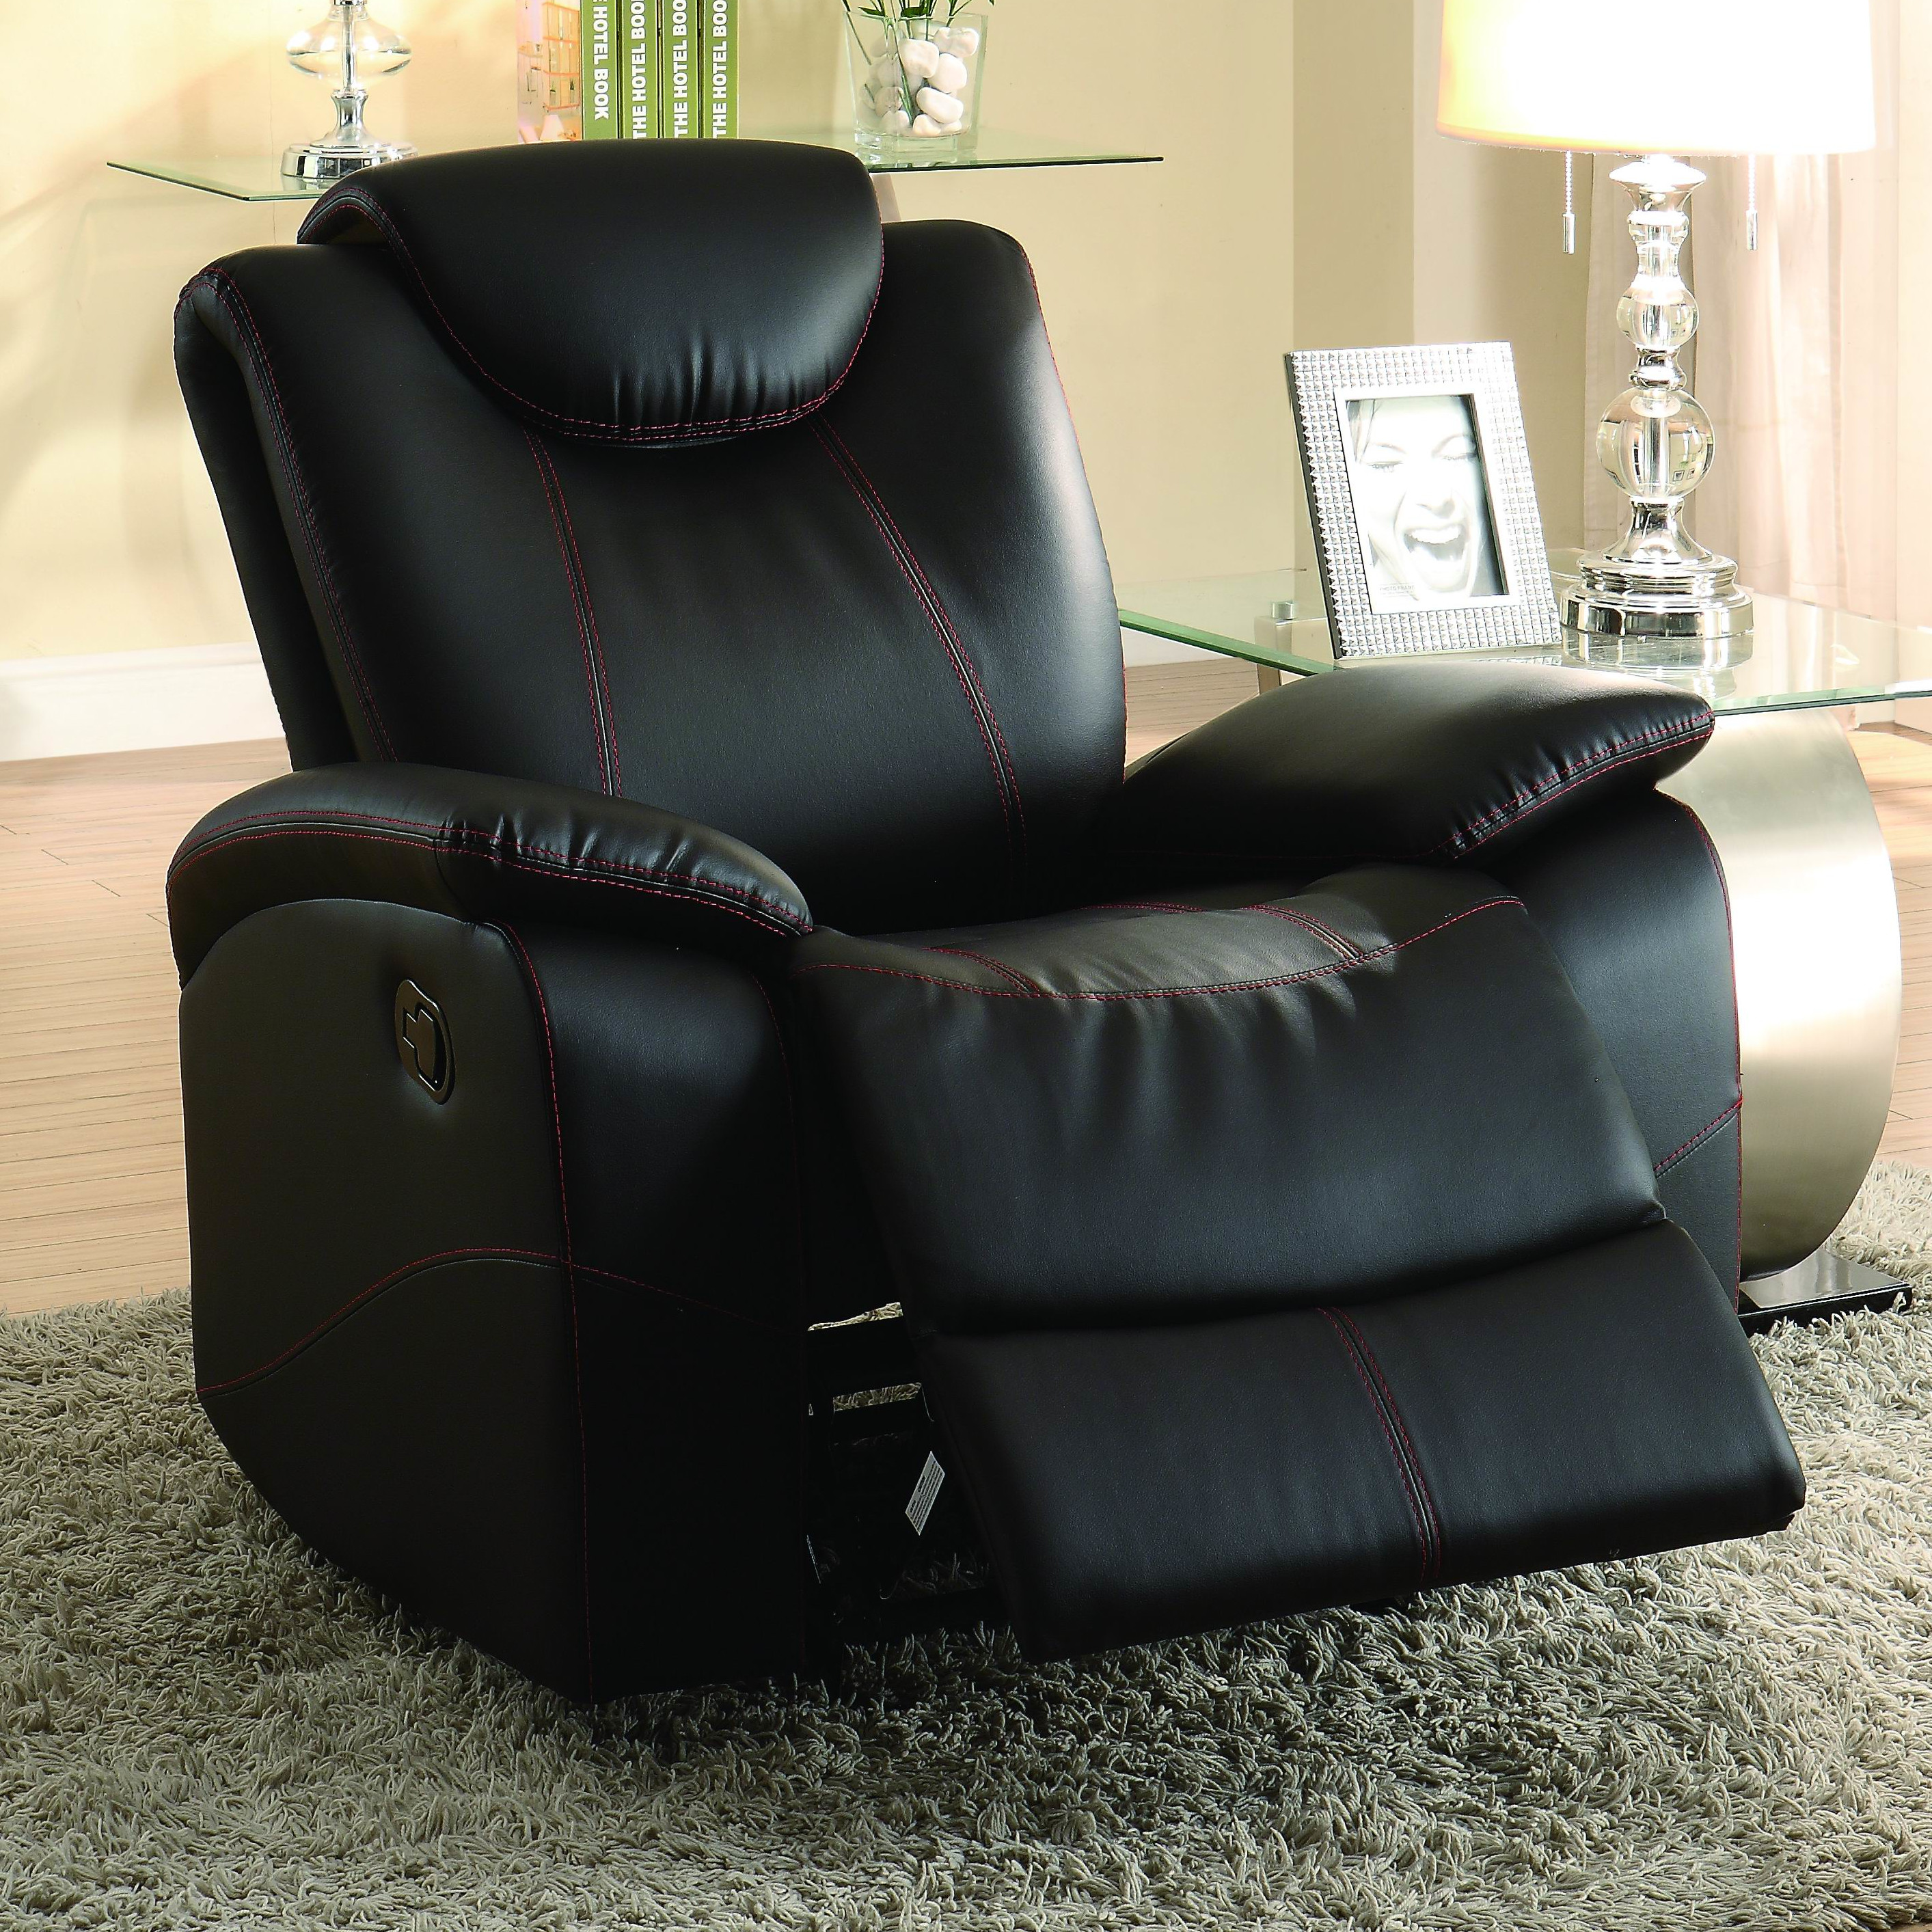 Nursery Rockers | Glider Recliner | Best Glider Recliner for Nursery